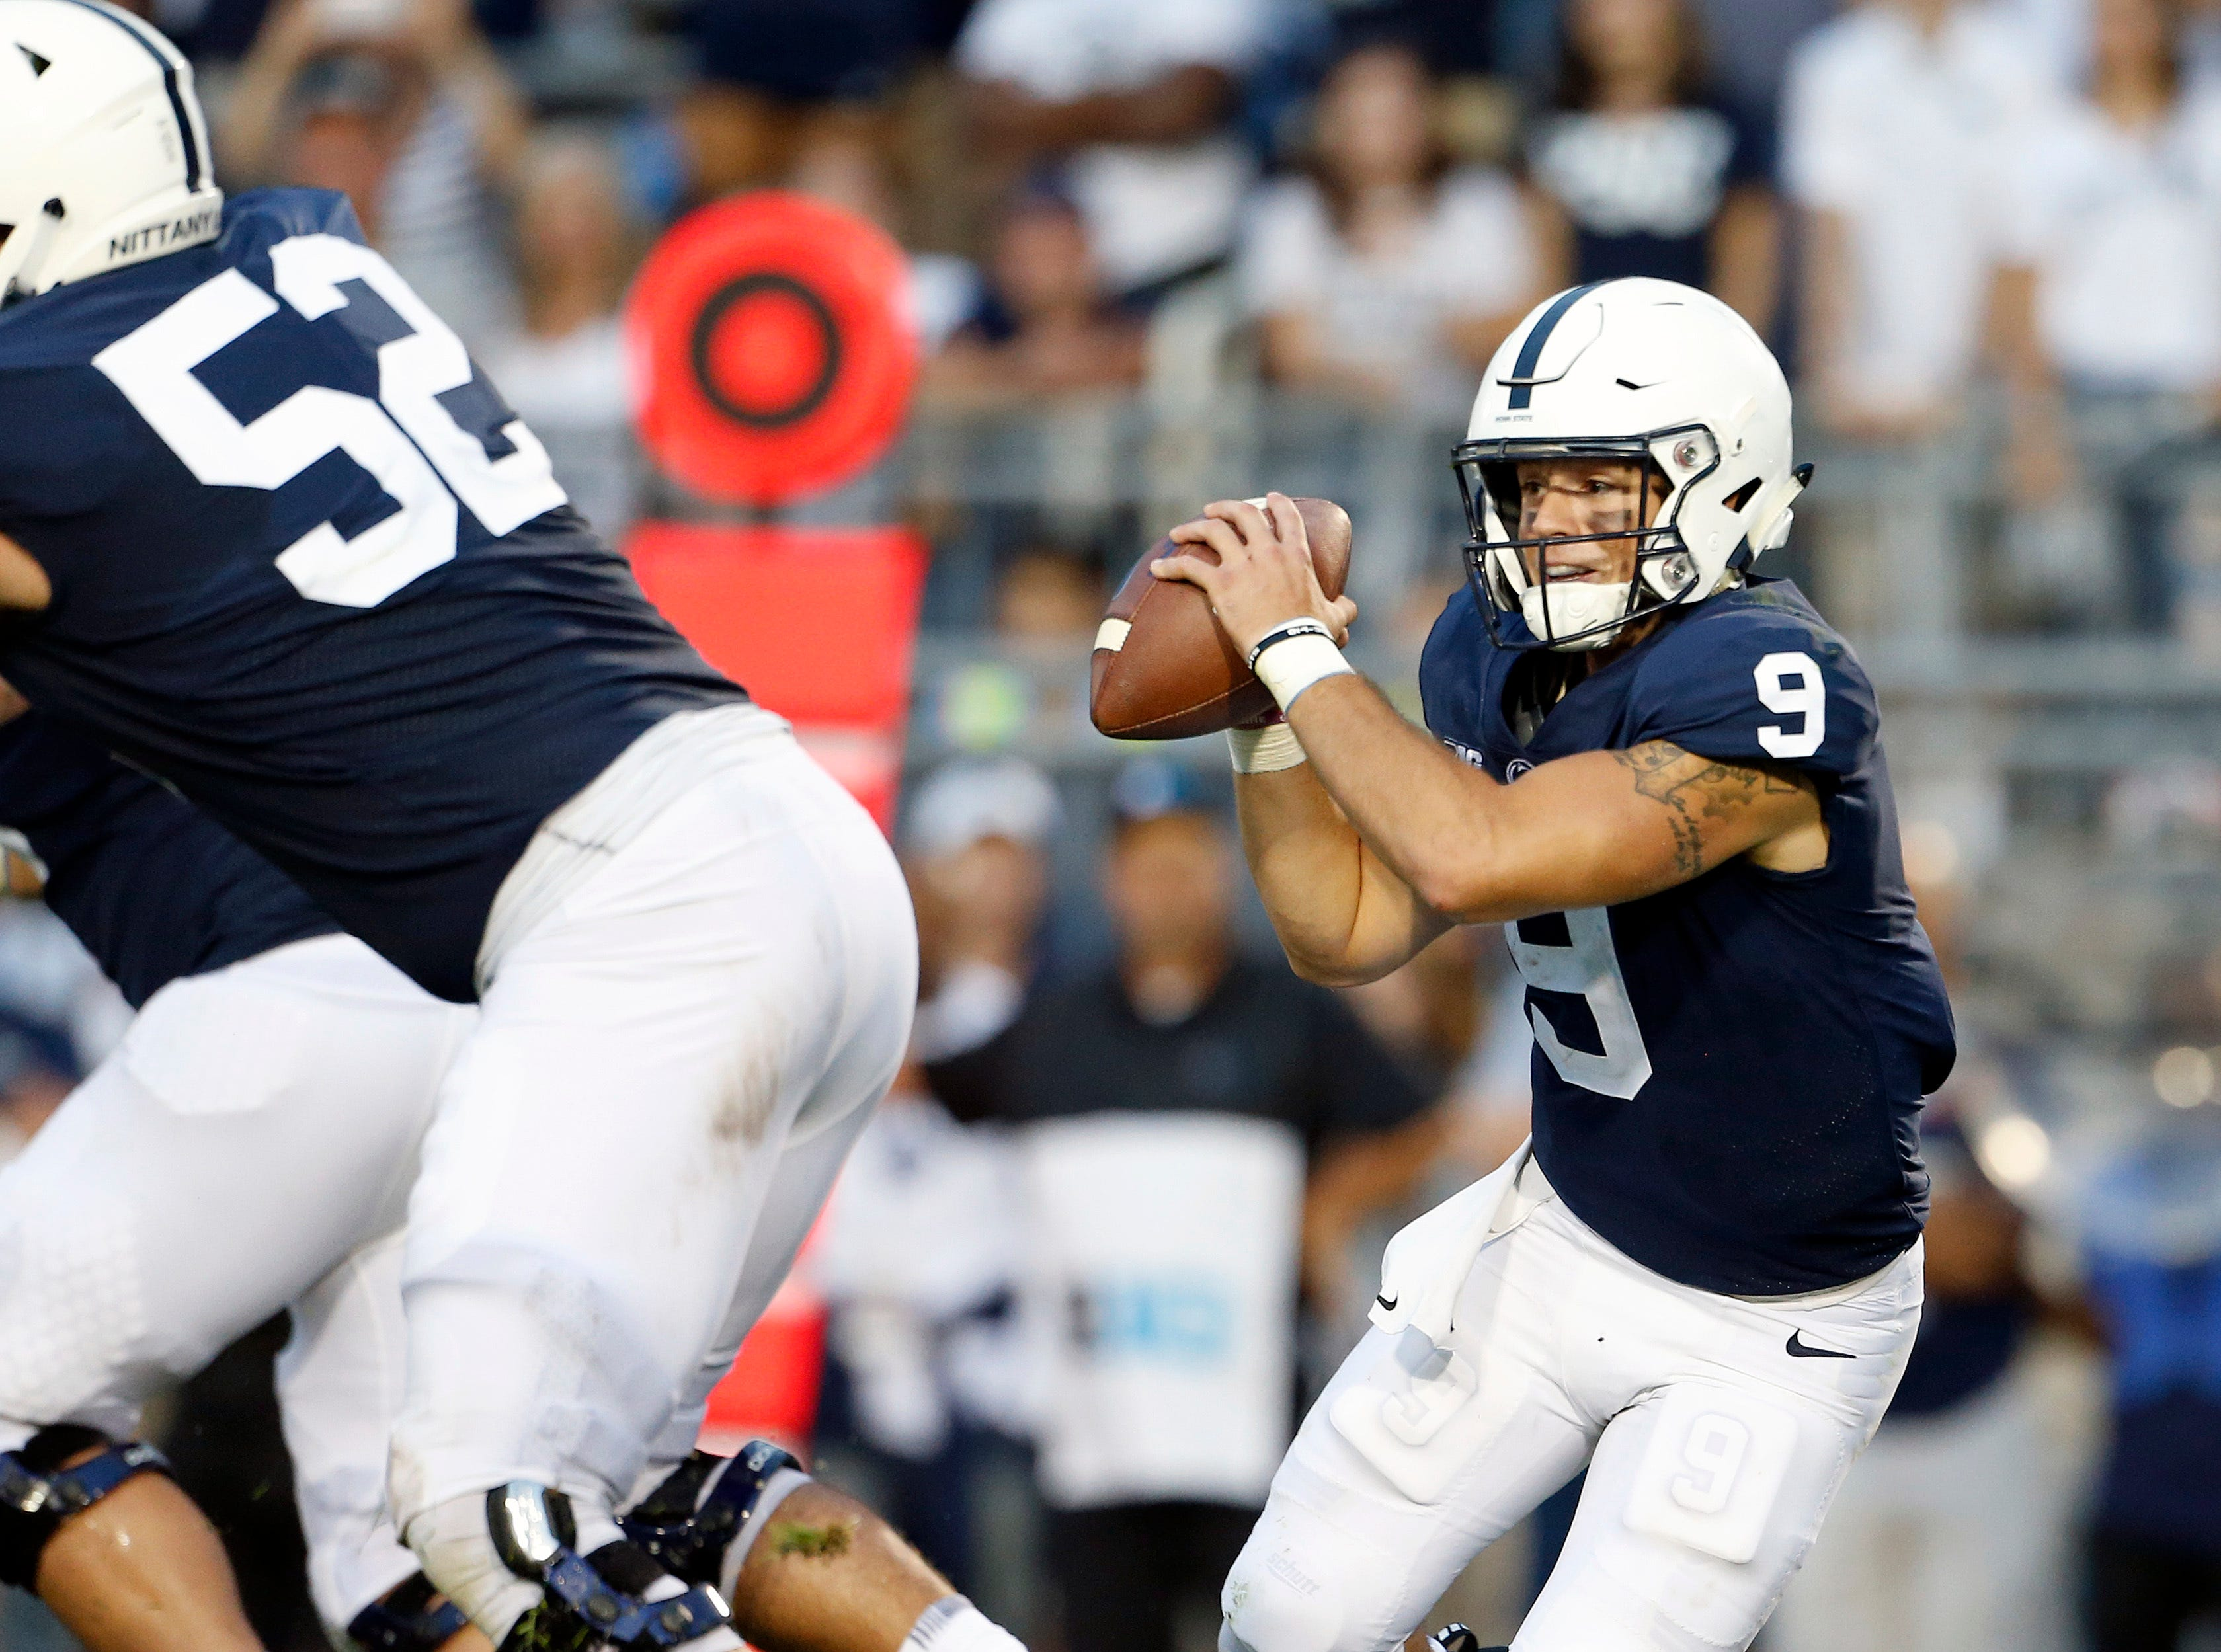 Penn State quarterback Trace McSorley (9) scrambles out of the pocket against during the second half of an NCAA college football game against Appalachian State in State College, Pa., Saturday, Sept. 1, 2018. Penn State won 45-38 in overtime. (AP Photo/Chris Knight)